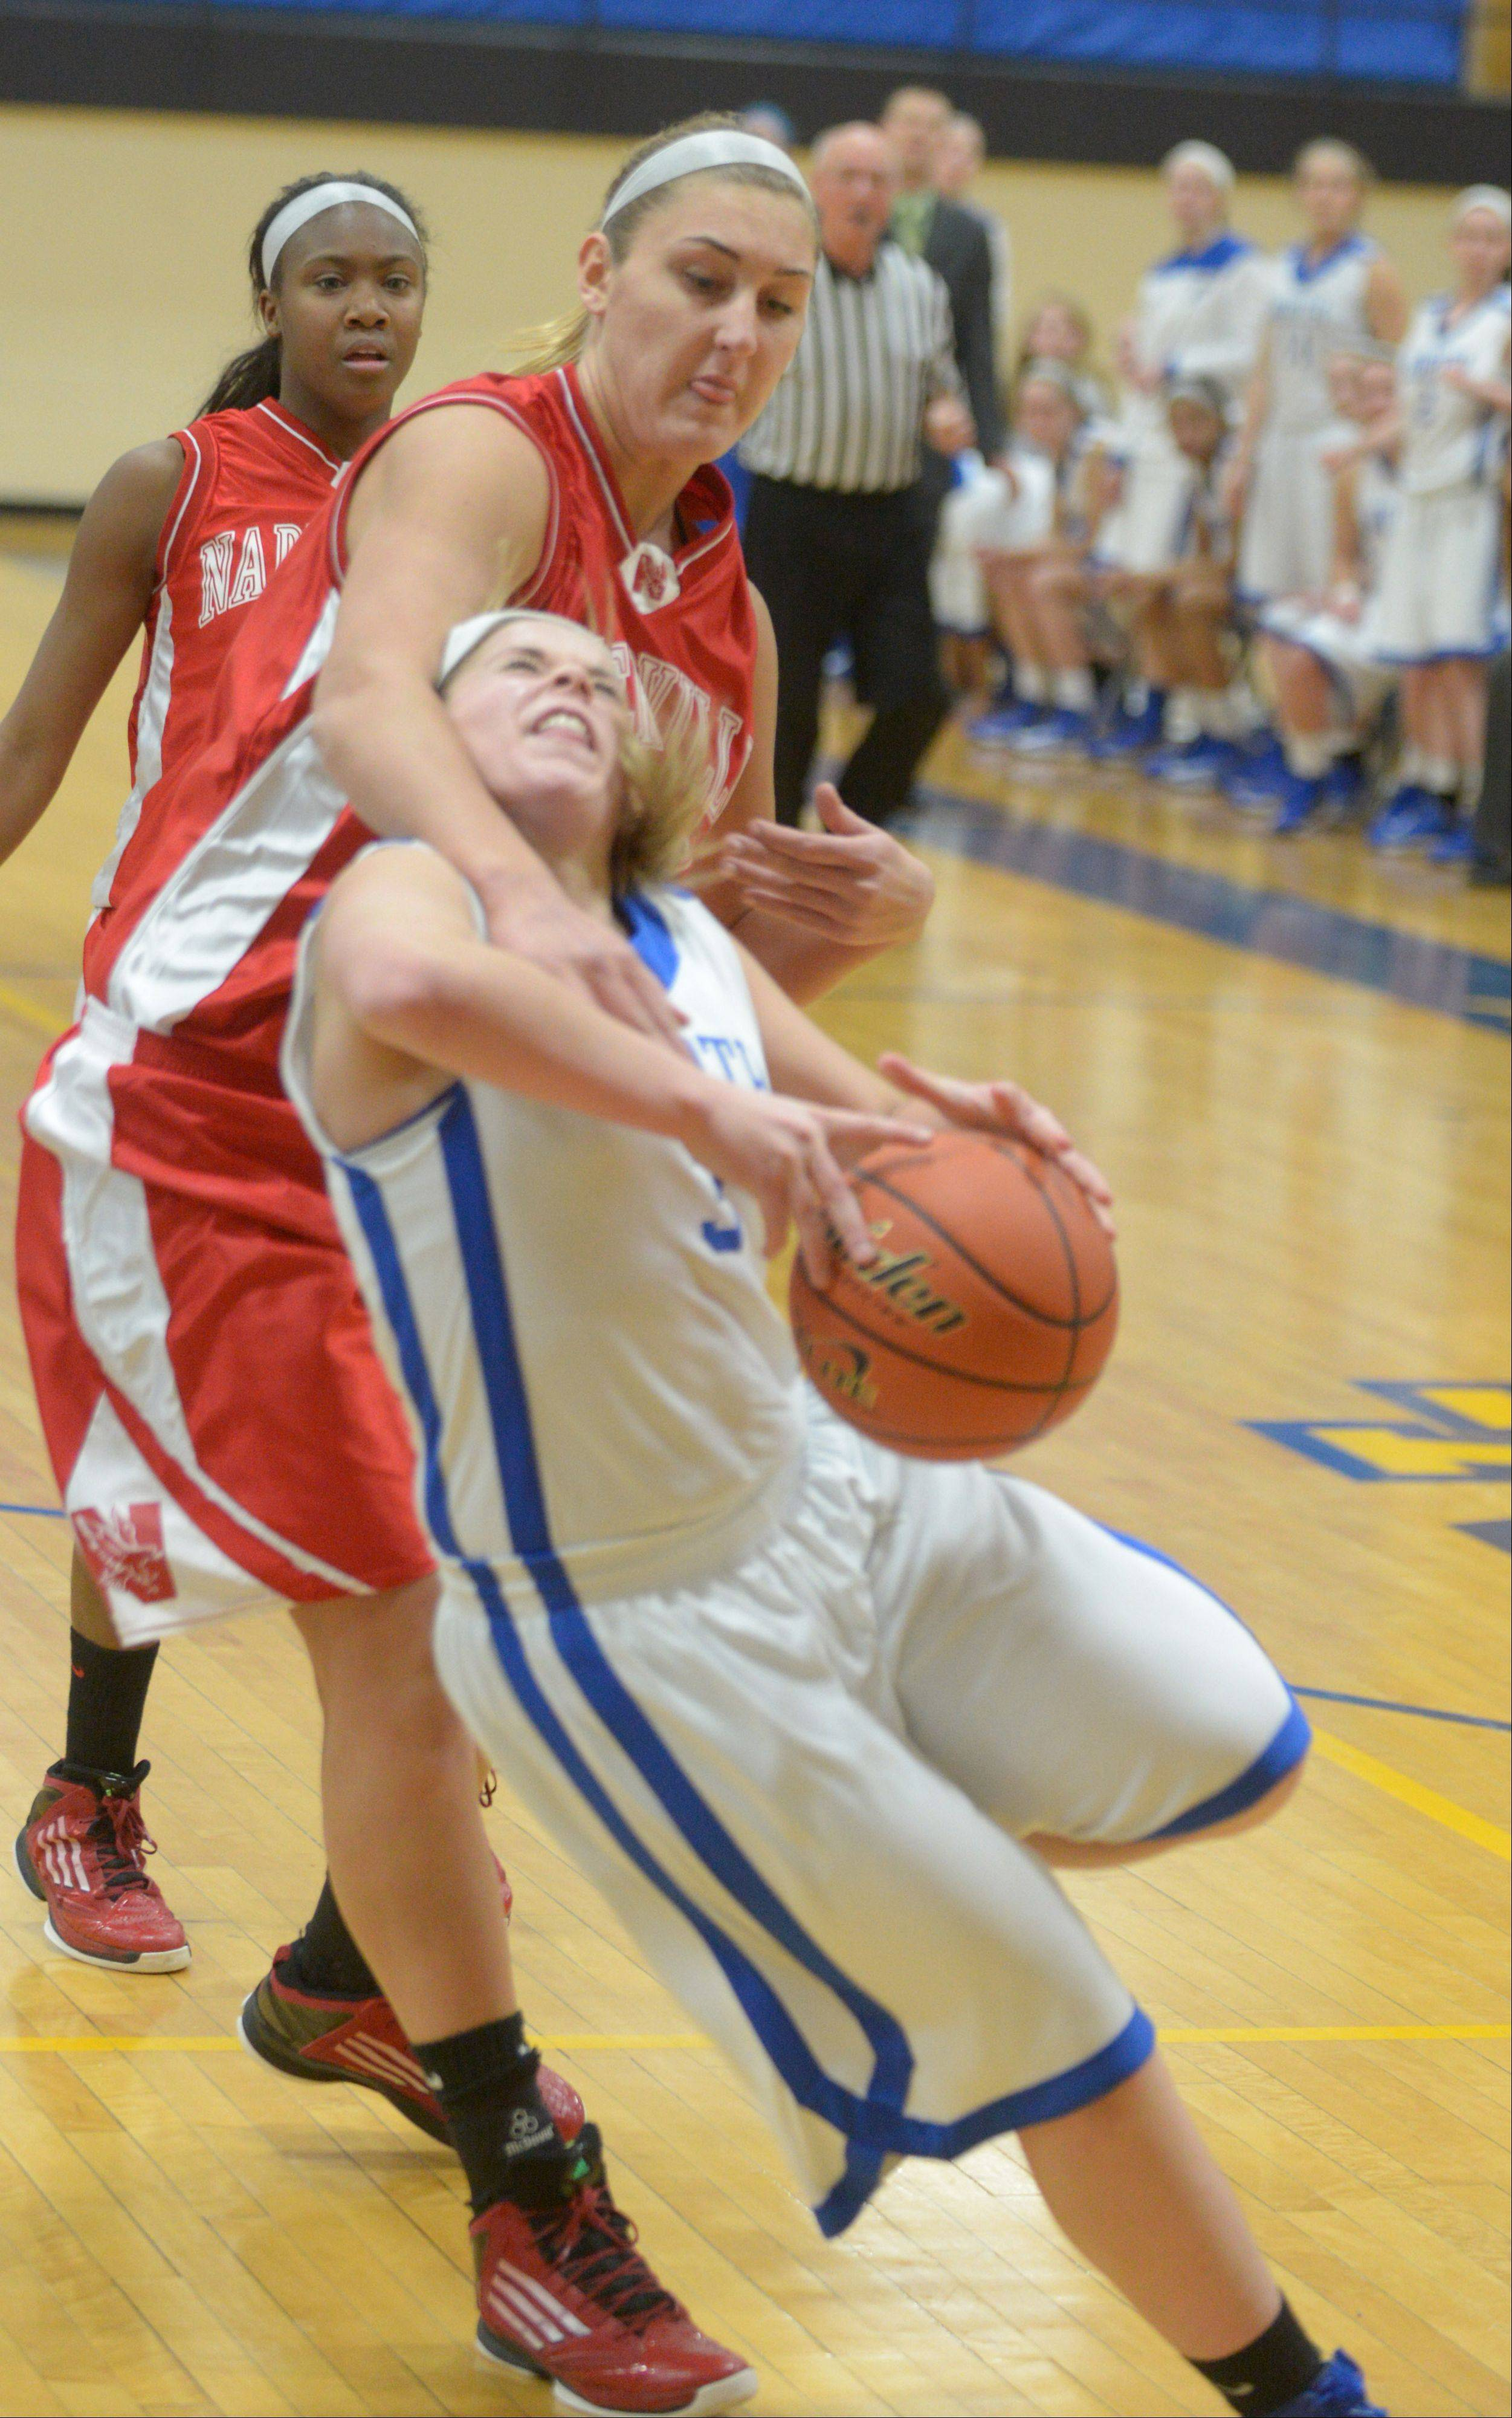 Victoria Trowbridge of Naperville central pulls down Reilly Stewart of Wheaton North during the Naperville Central at Wheaton North Girls basketball game Thursday.